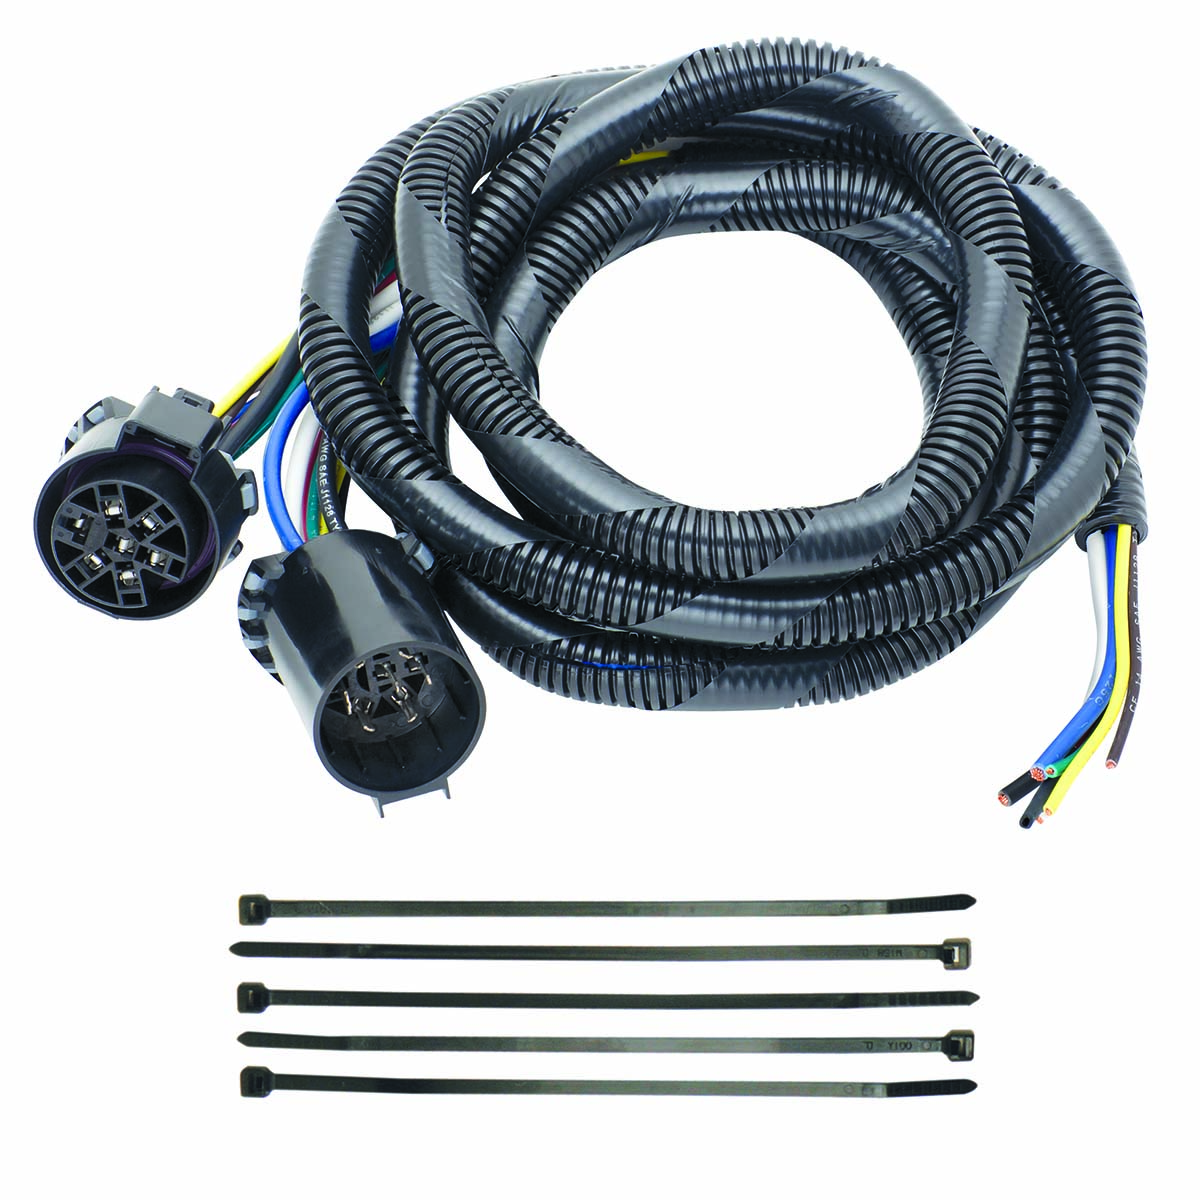 20140 --- 5th Wheel Adapter Harness -7-Way Flat Pin U.S. Car Connector  Assembly 7' with Pigtail - Croft Trailer Supply